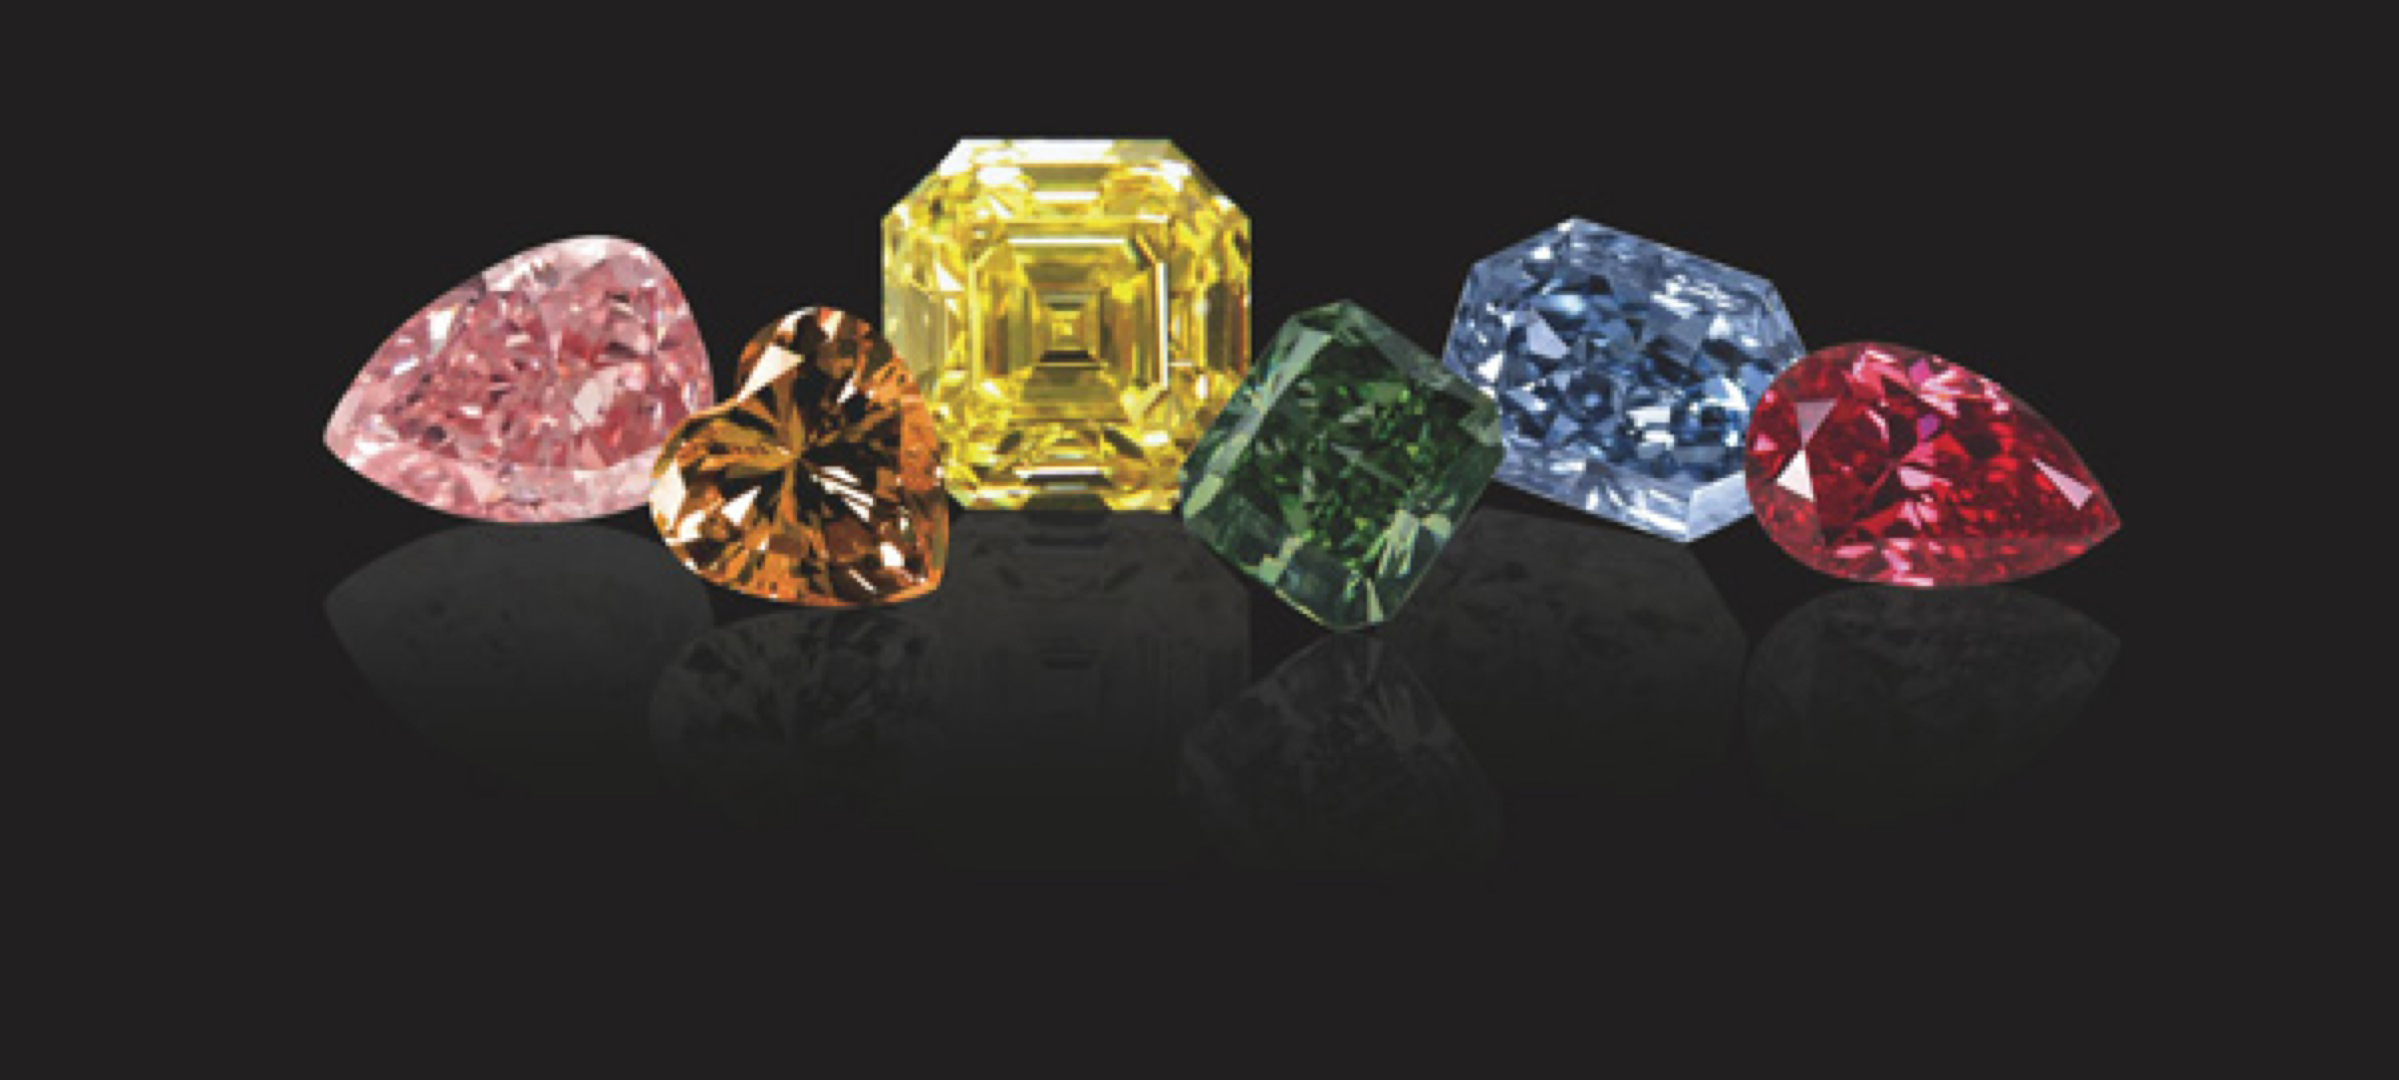 education has you this like or often need color pro diamond from carat yellow such colored everything other orange vivid brown the hue as secondary overtone diamonds comparison fancy a